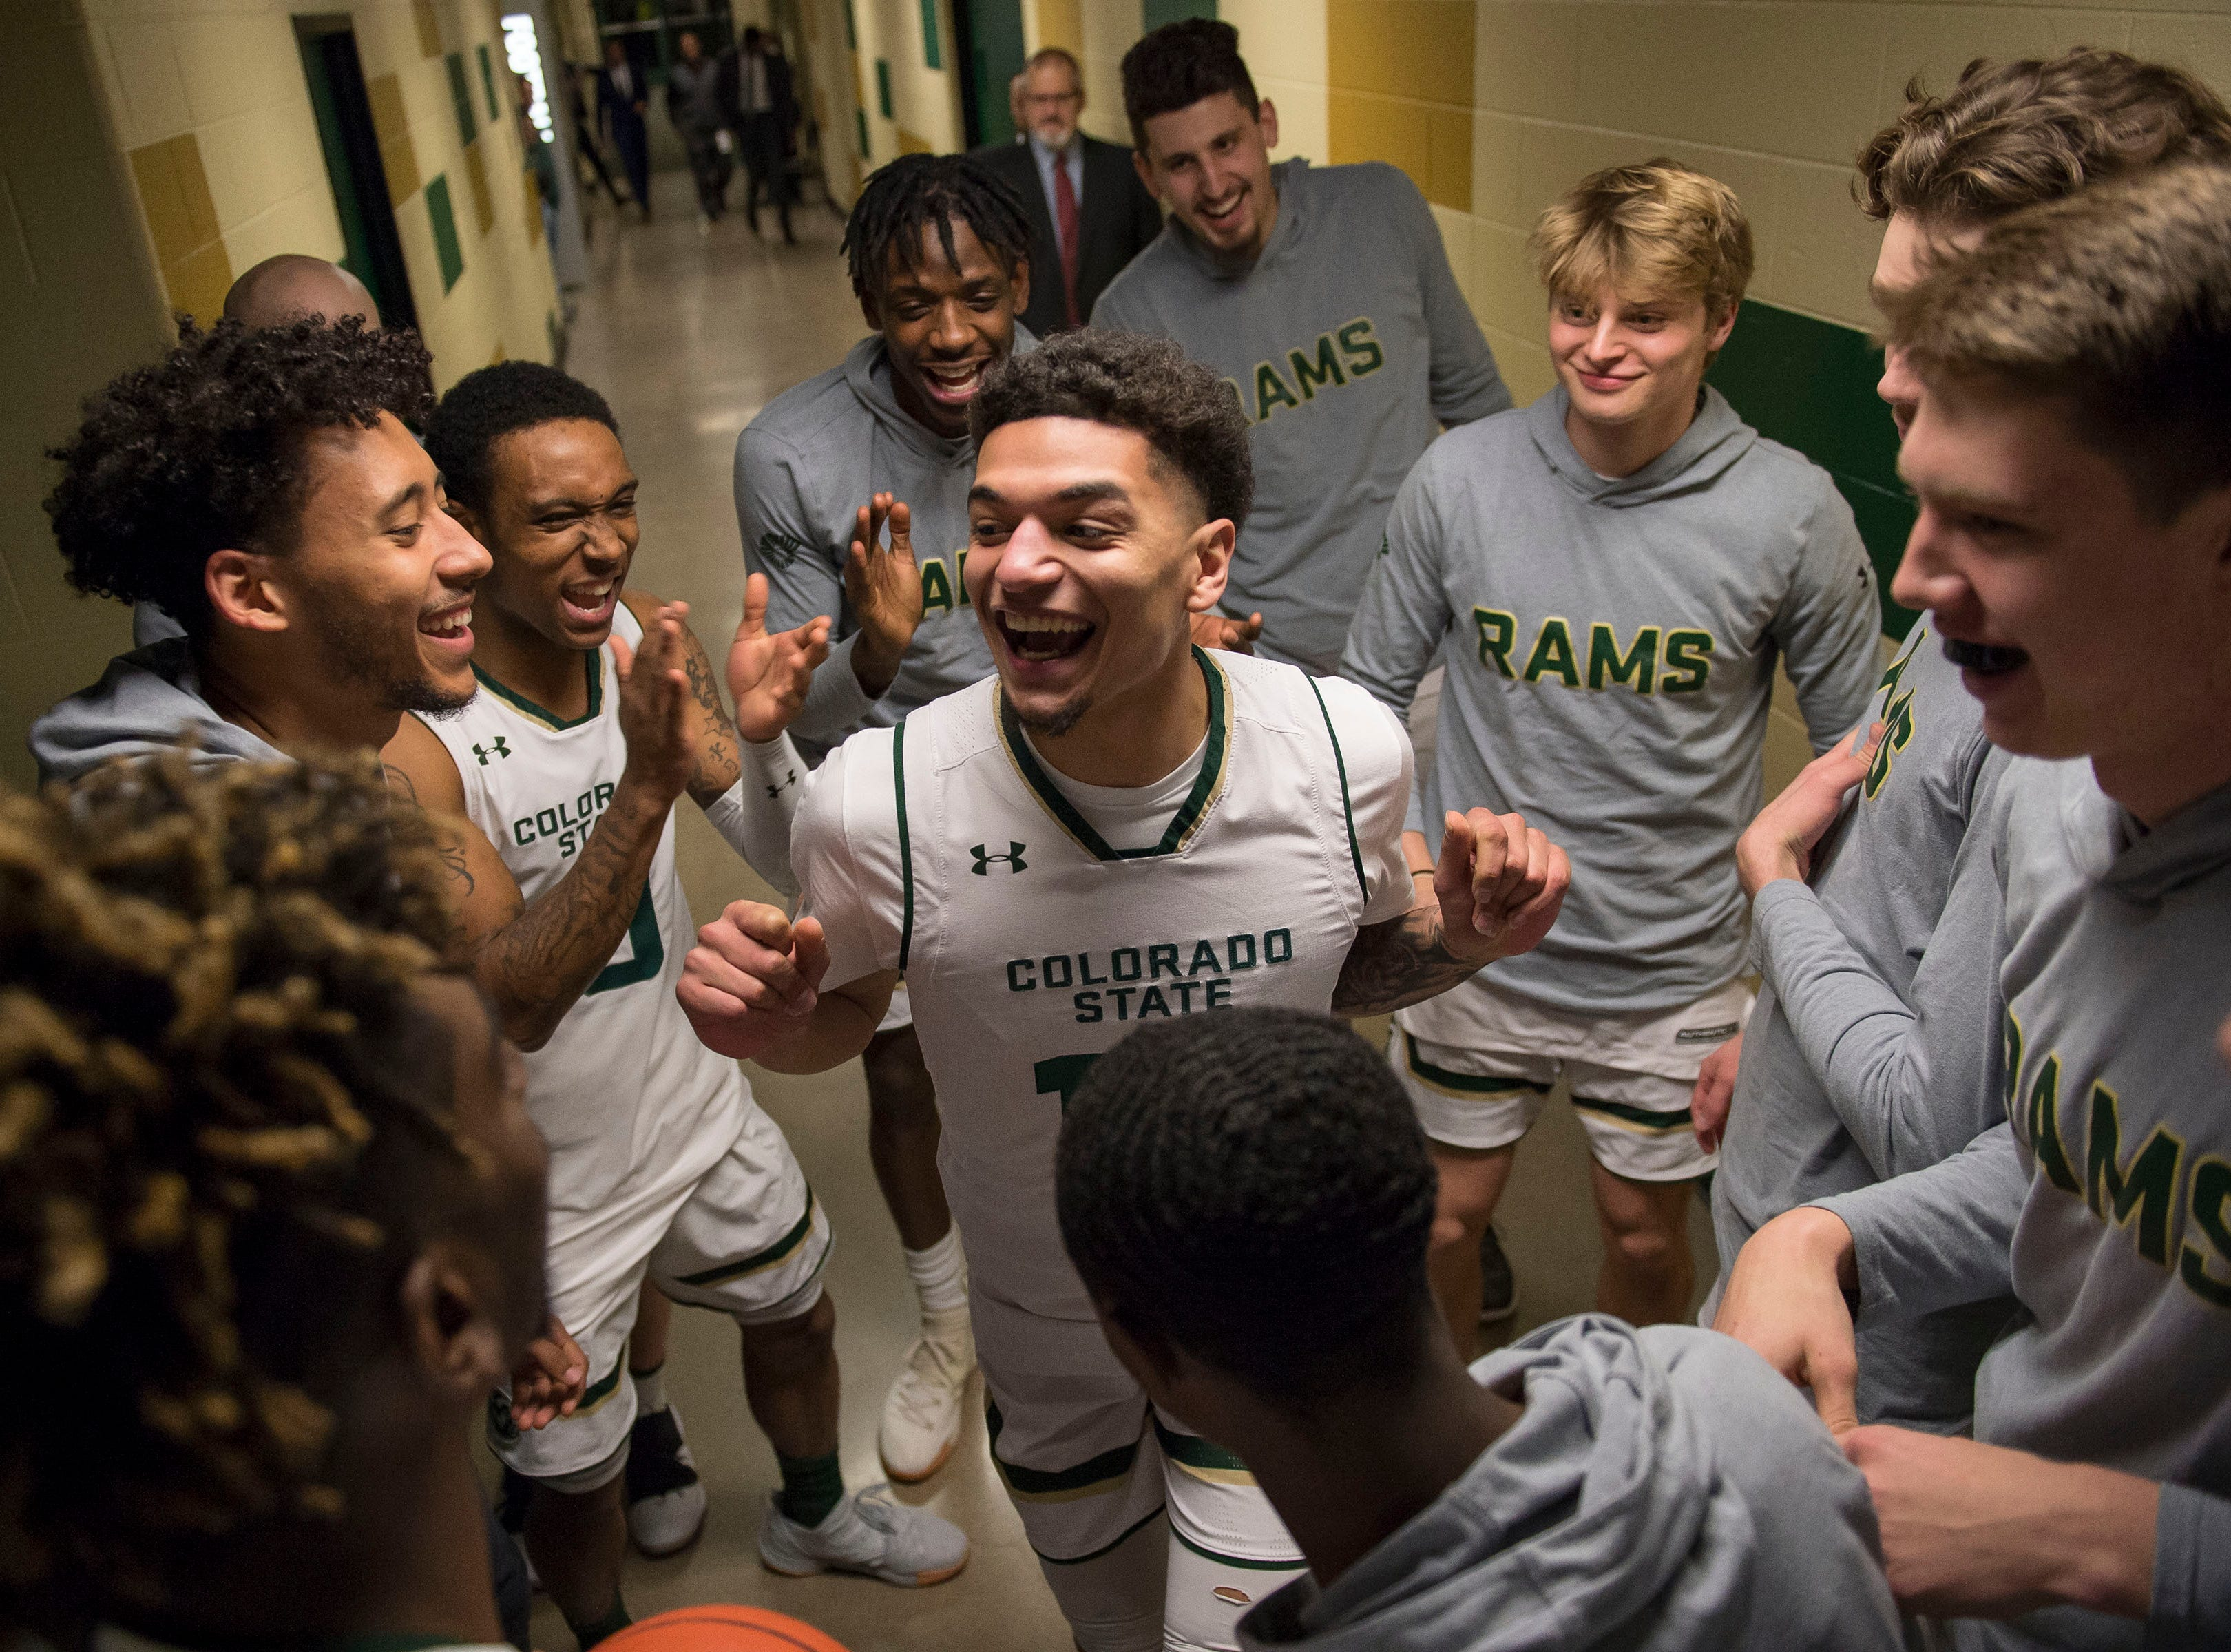 Colorado State University junior guard Anthony Masinton-Bonner (15) dances in the tunnel while getting hyped up with his team before a game against the Air Force Academy on Tuesday, Jan. 8, 2019, at Moby Arena in Fort Collins, Colo.